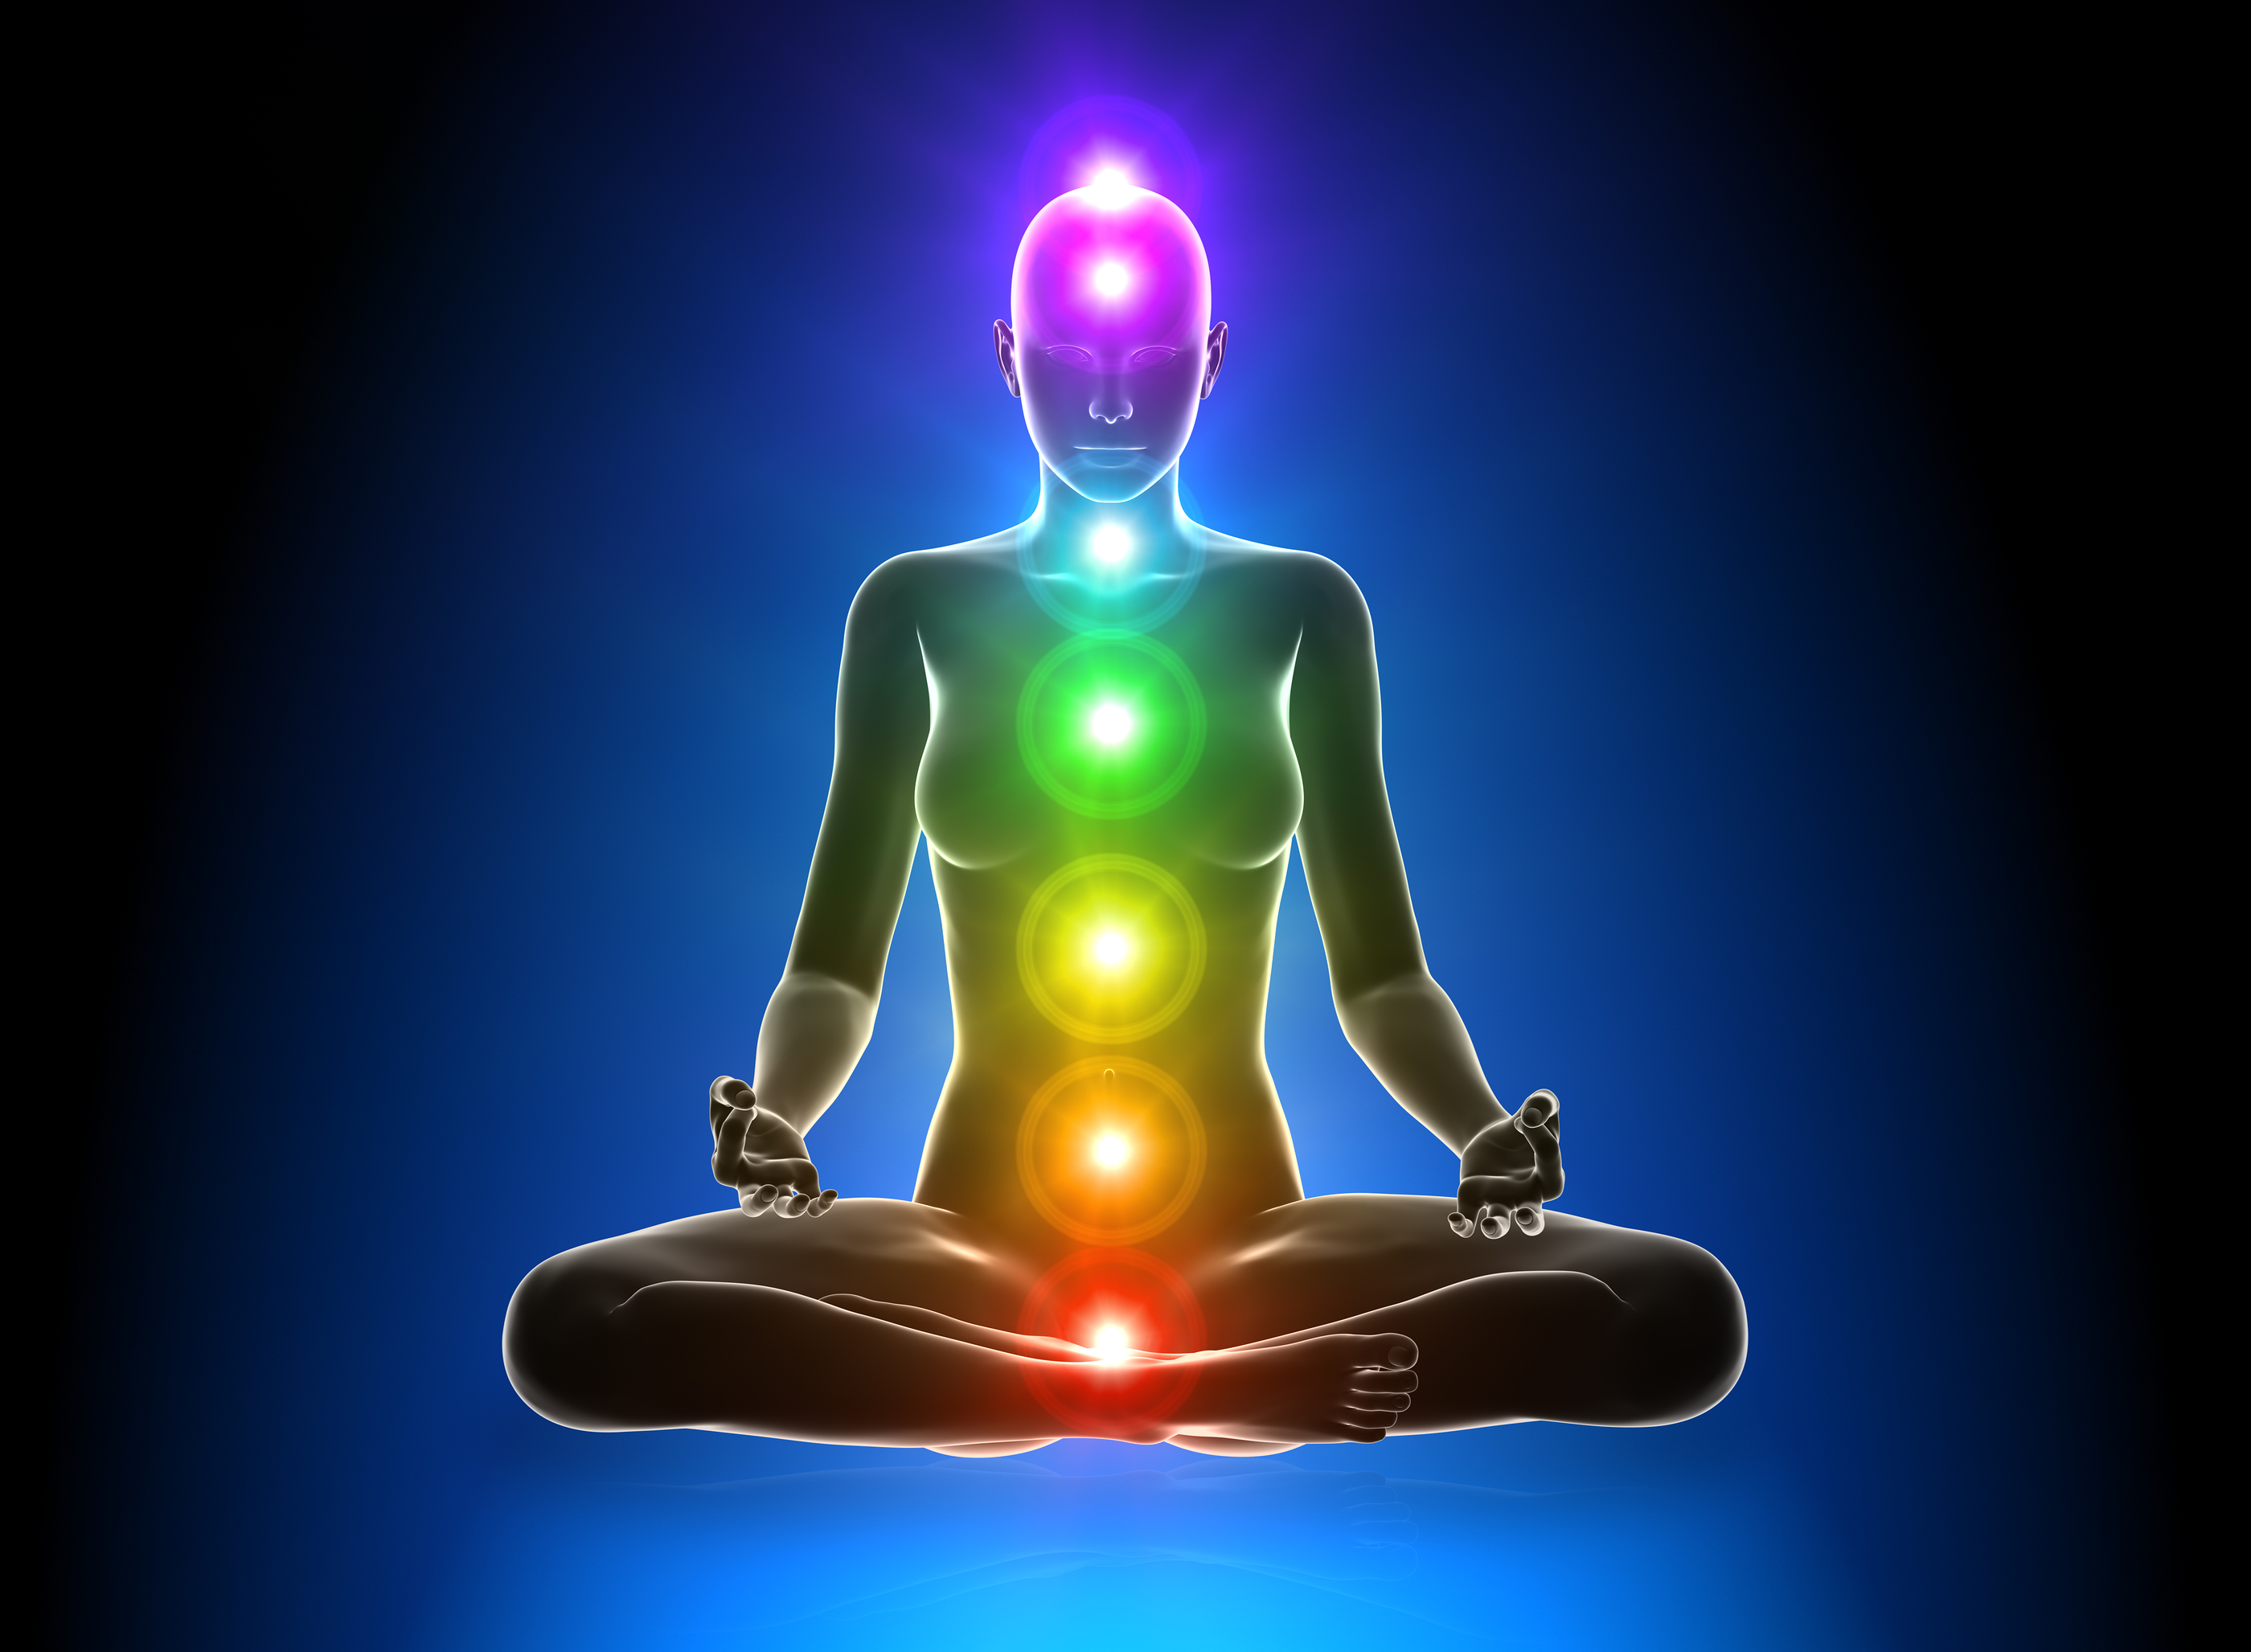 Chakras Energy Centers In The Body The Center For Life